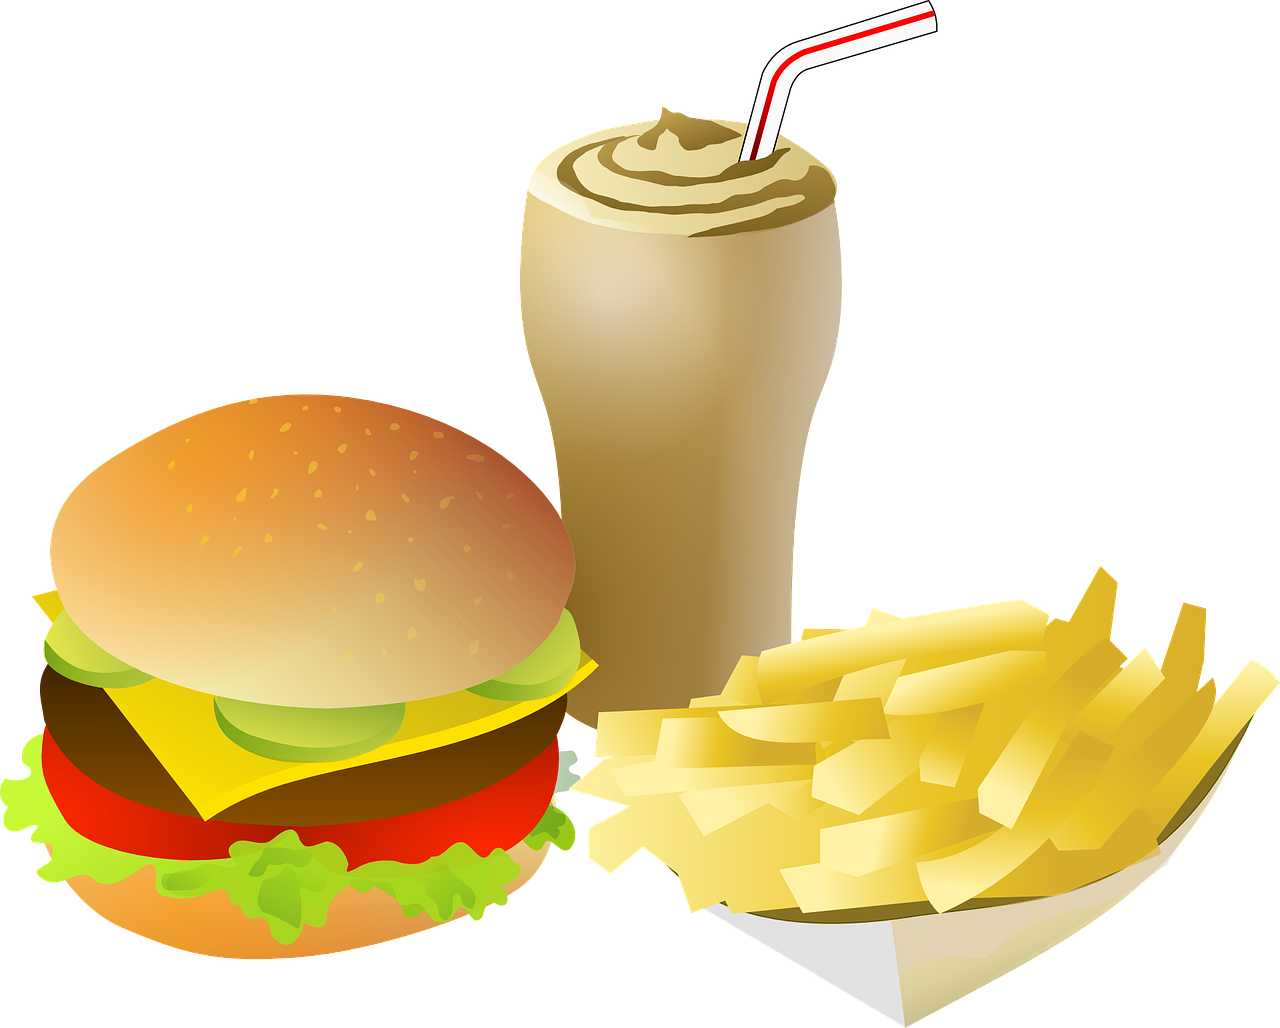 animated-chips-and-french-fries-image-0014